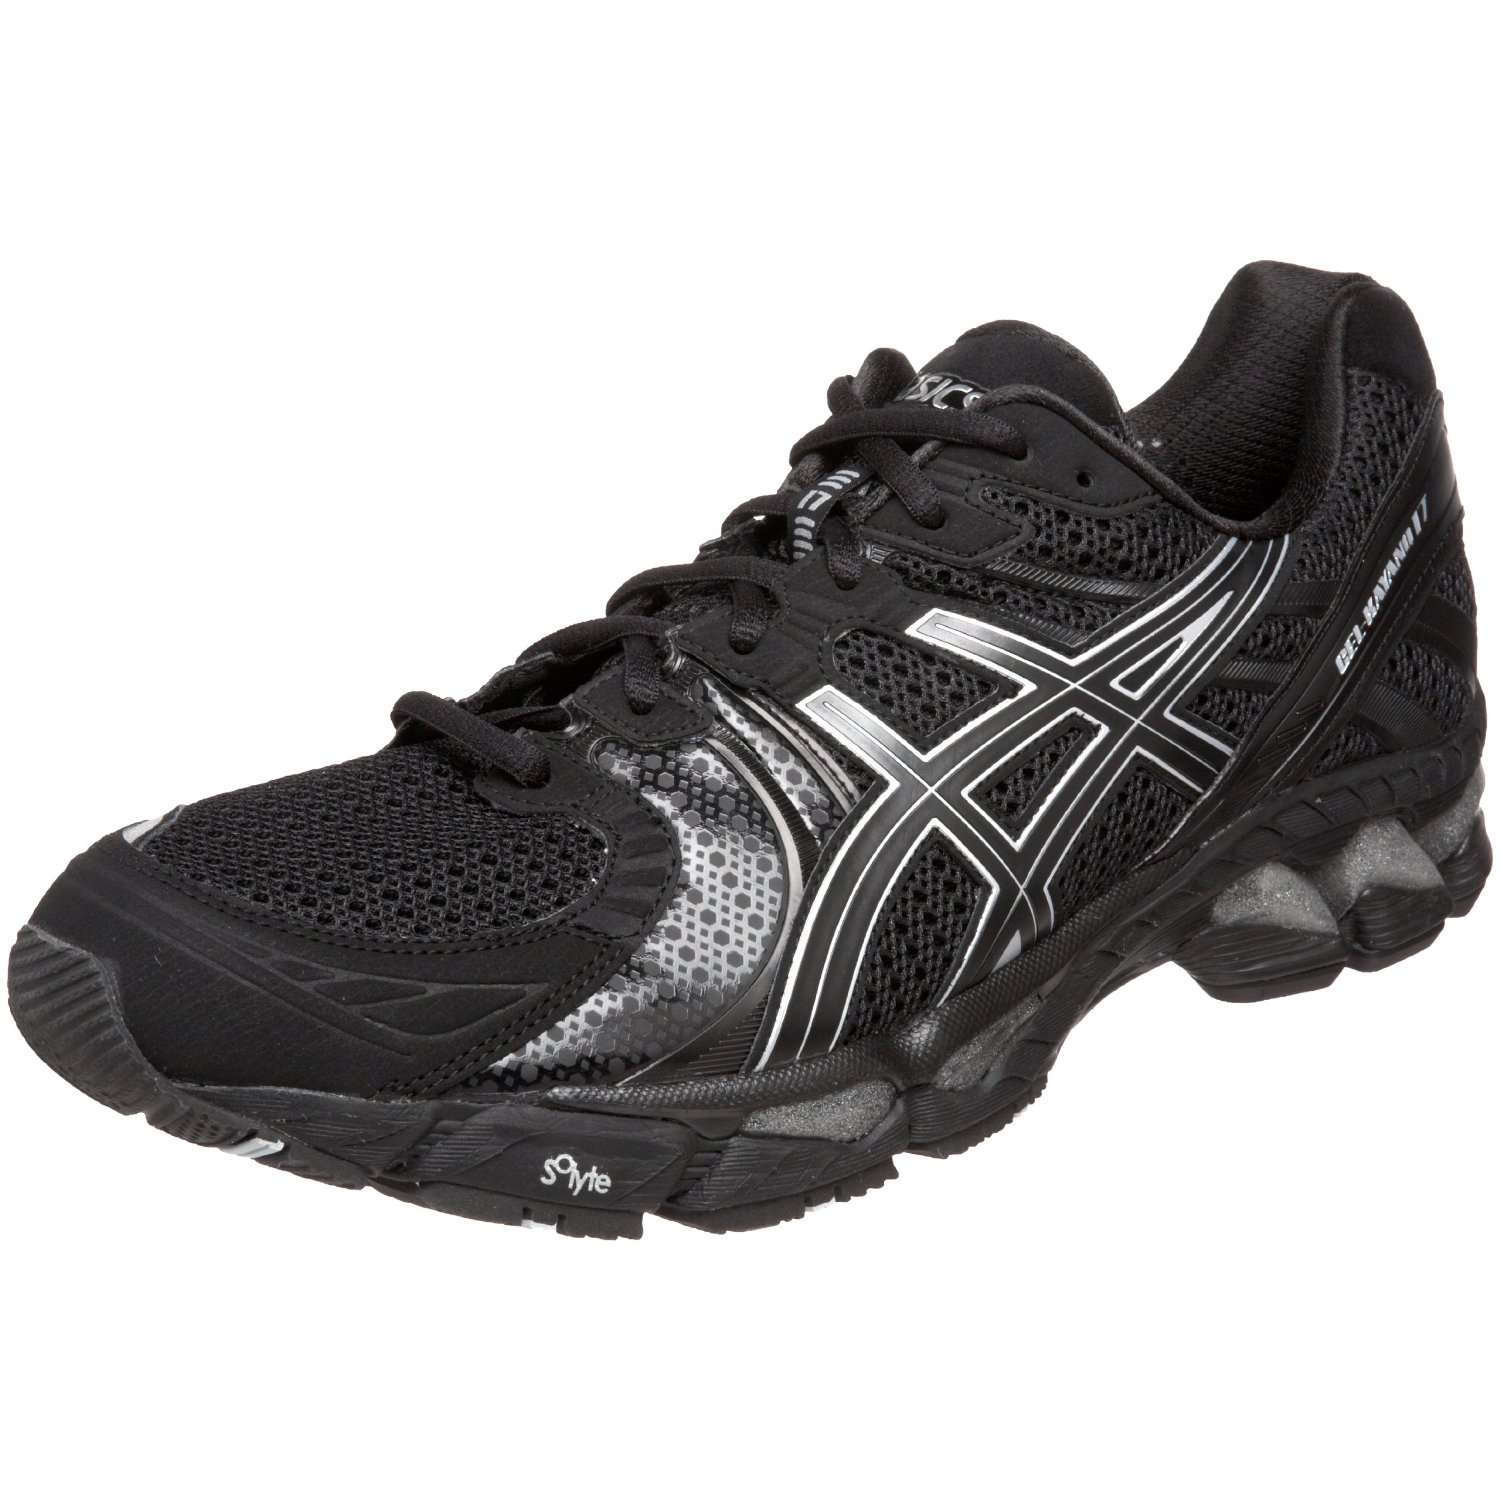 724a4b1ef605d ... usa the asics gel kayano 17 running shoes are still available. they  proved to be